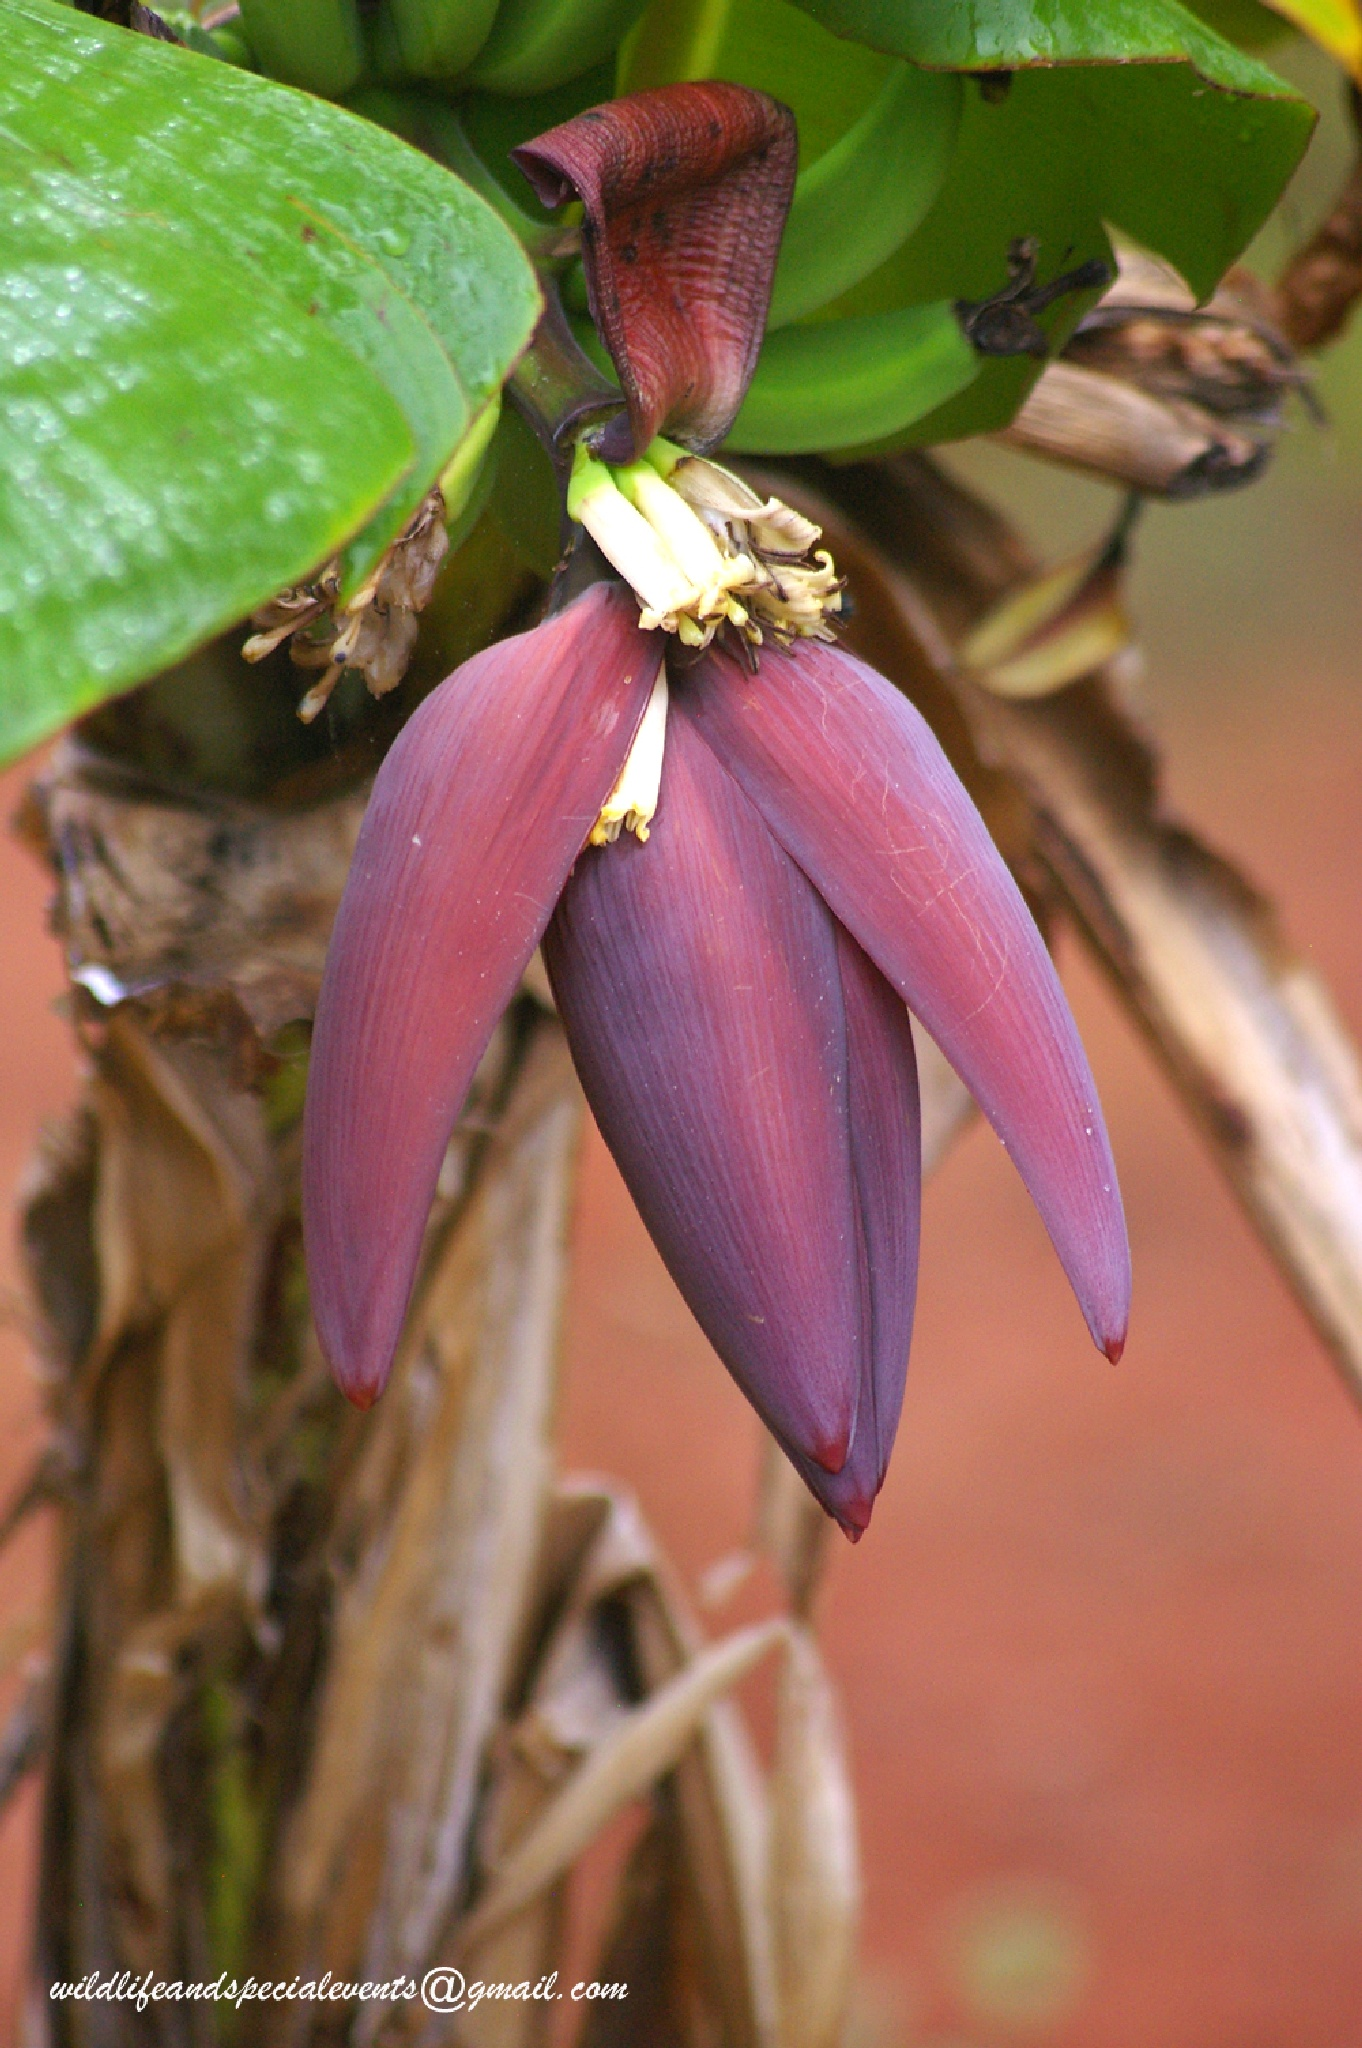 The Banana flower by oosie